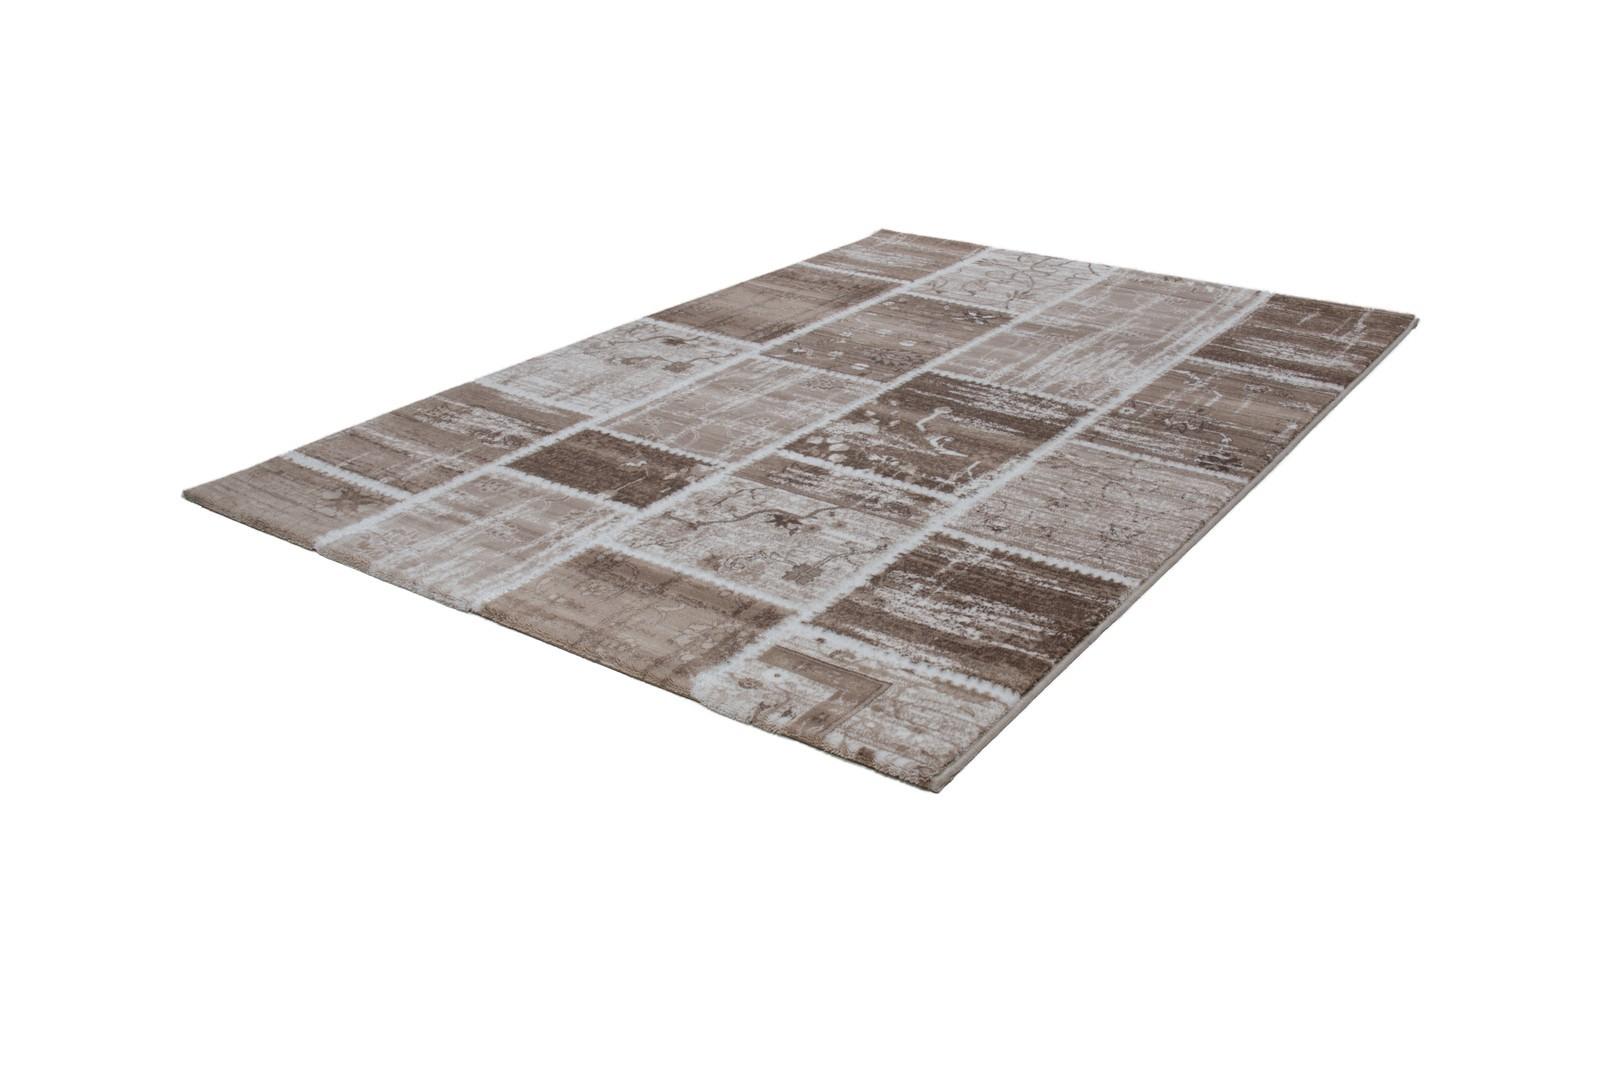 Tapis Salon Beige Marron Emejing Tapis Marron Beige Pictures Awesome Interior